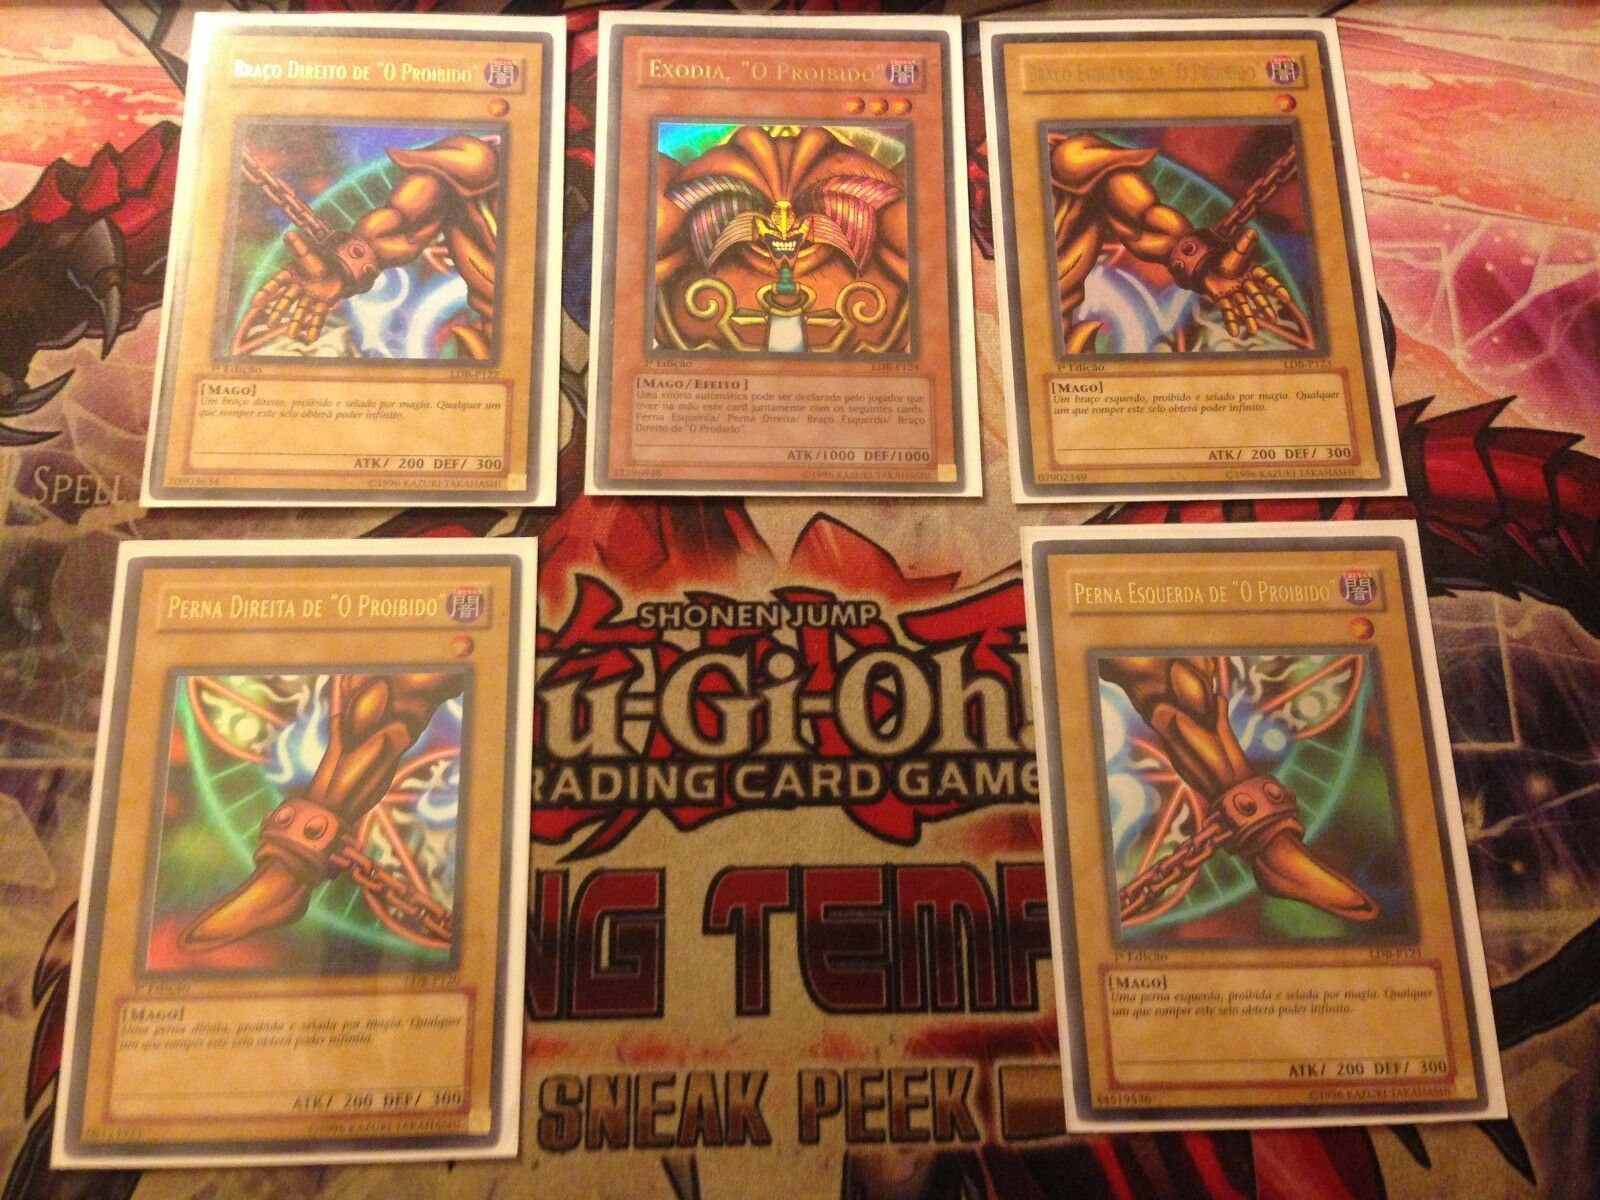 EXODIA COMPLETE SET  (PORTUGUESE) FIRST FIRST FIRST EDITION FORBIDDEN ONE (LP) YUGIOH  08767d